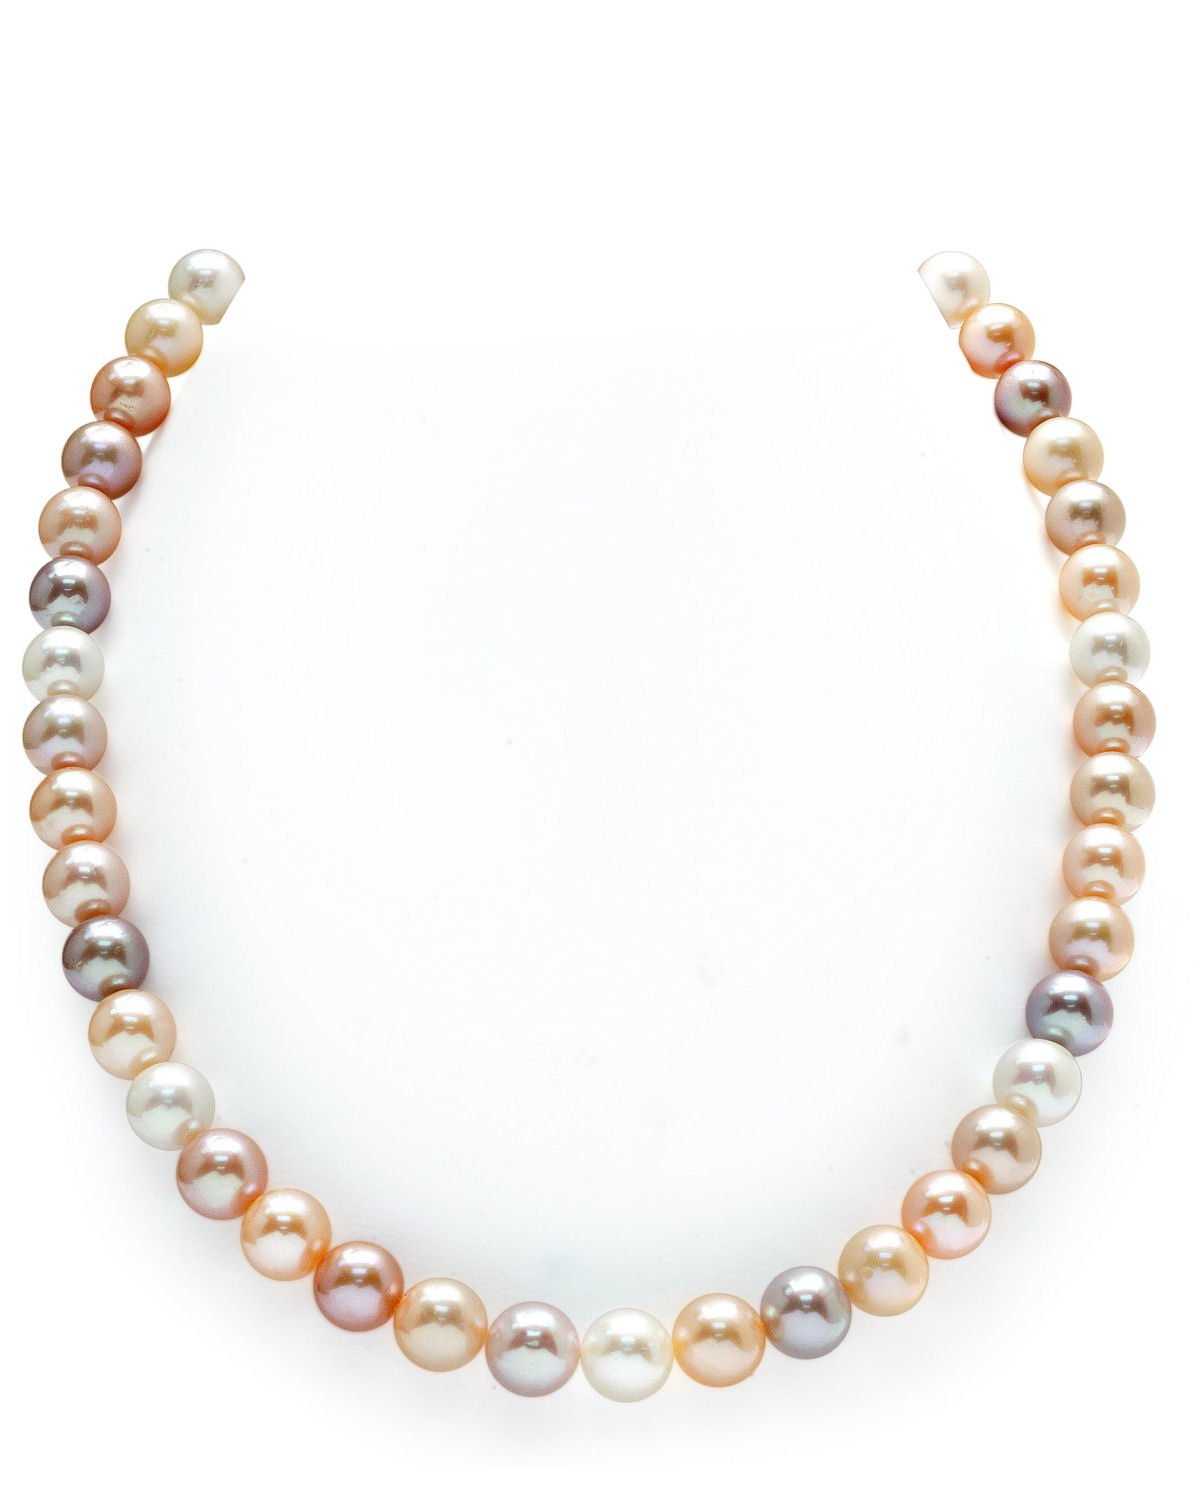 9-10mm Freshwater Multicolor Pearl Necklace - AAAA Quality